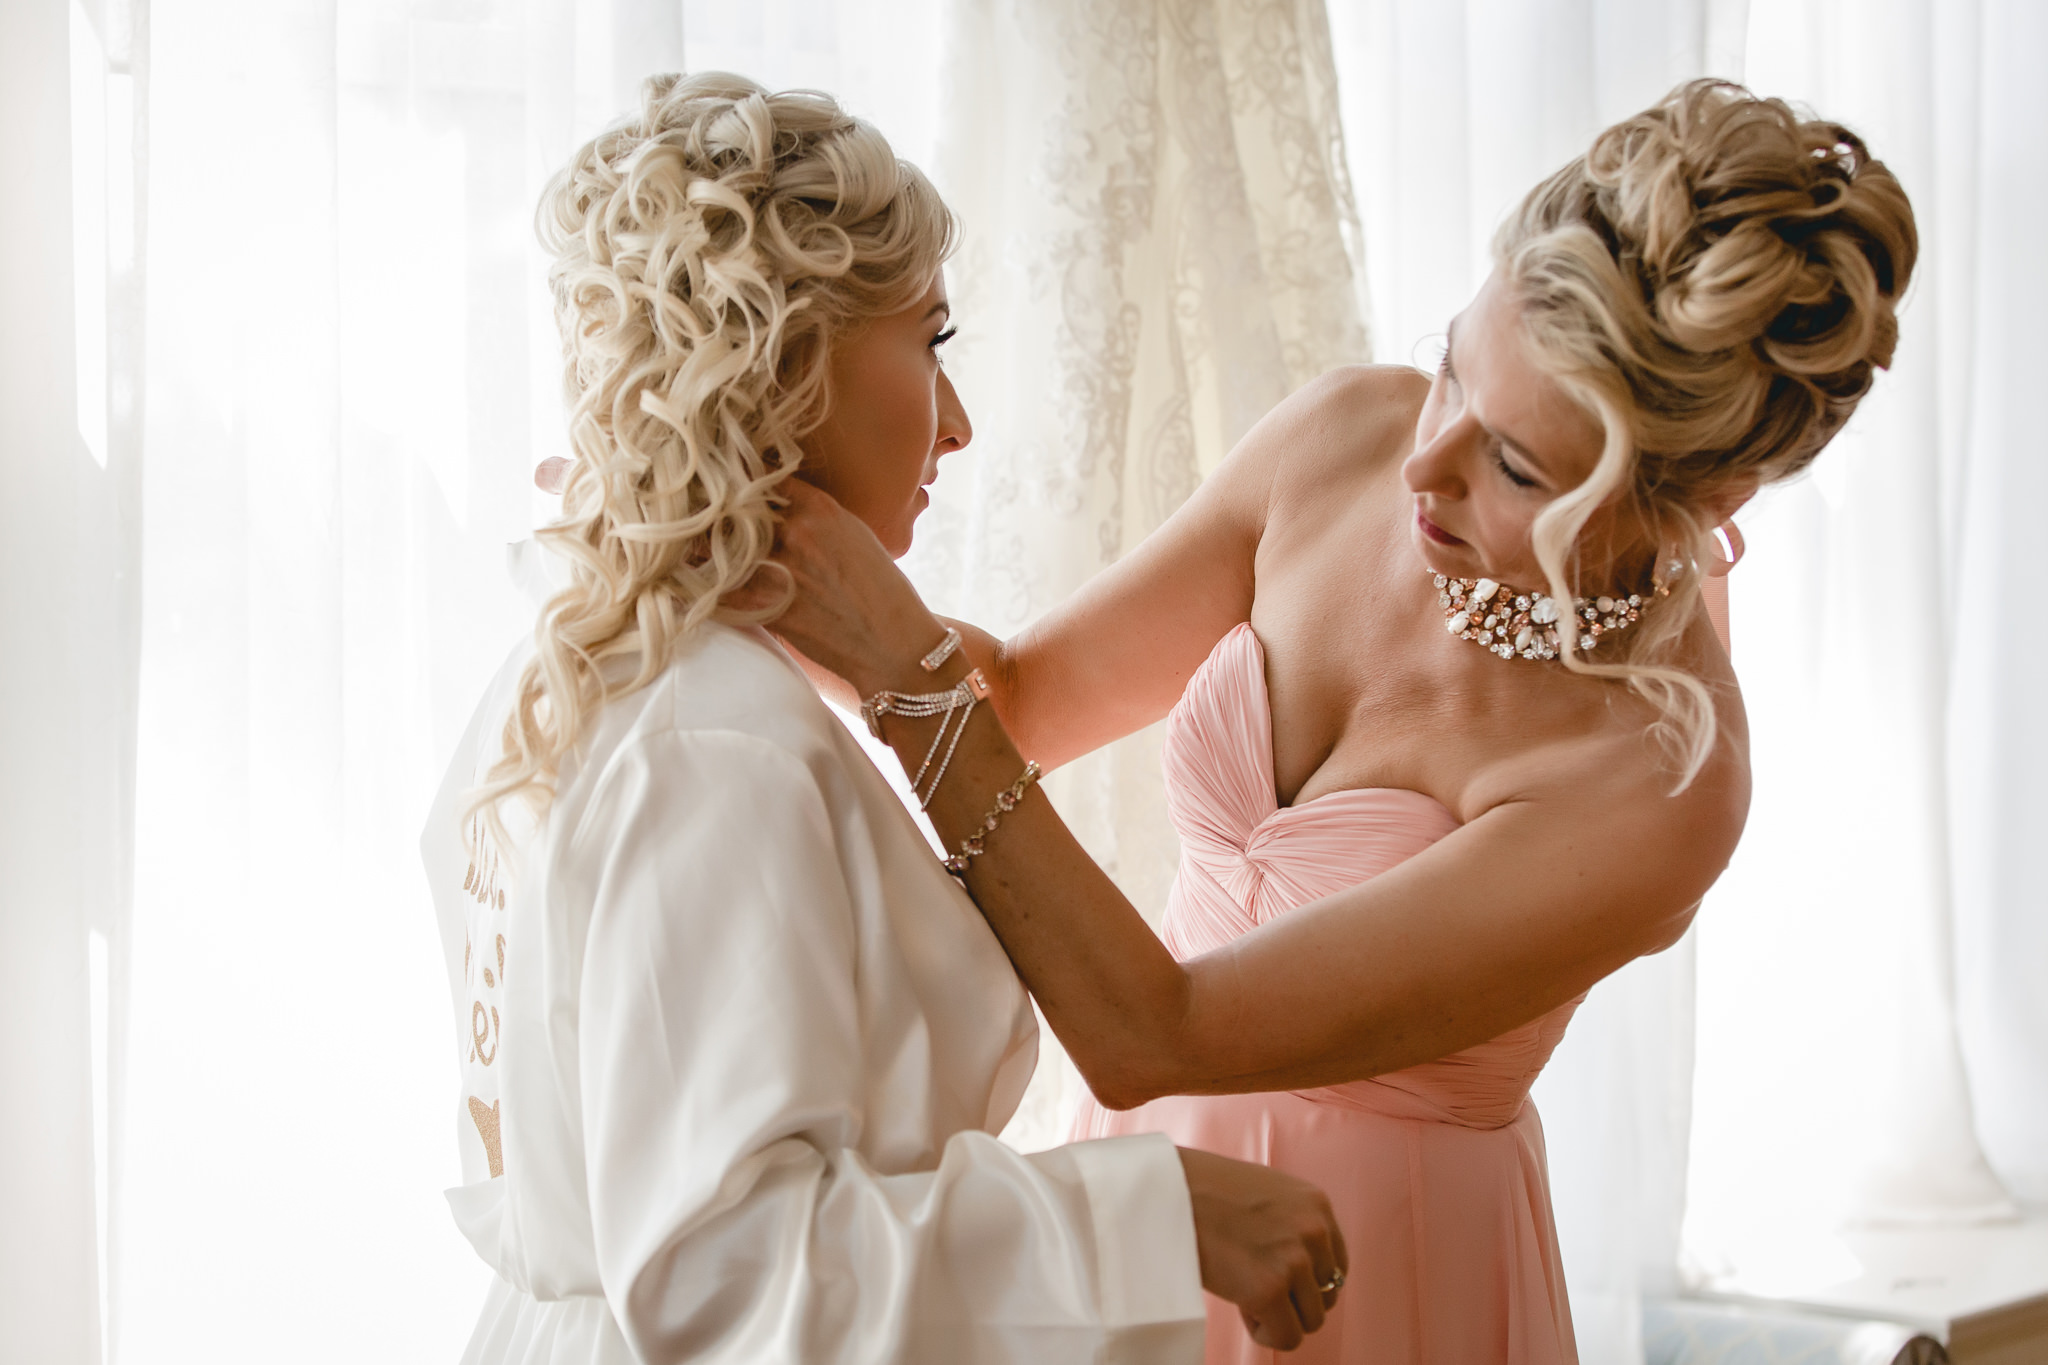 Mother of the bride puts bride's necklace on her